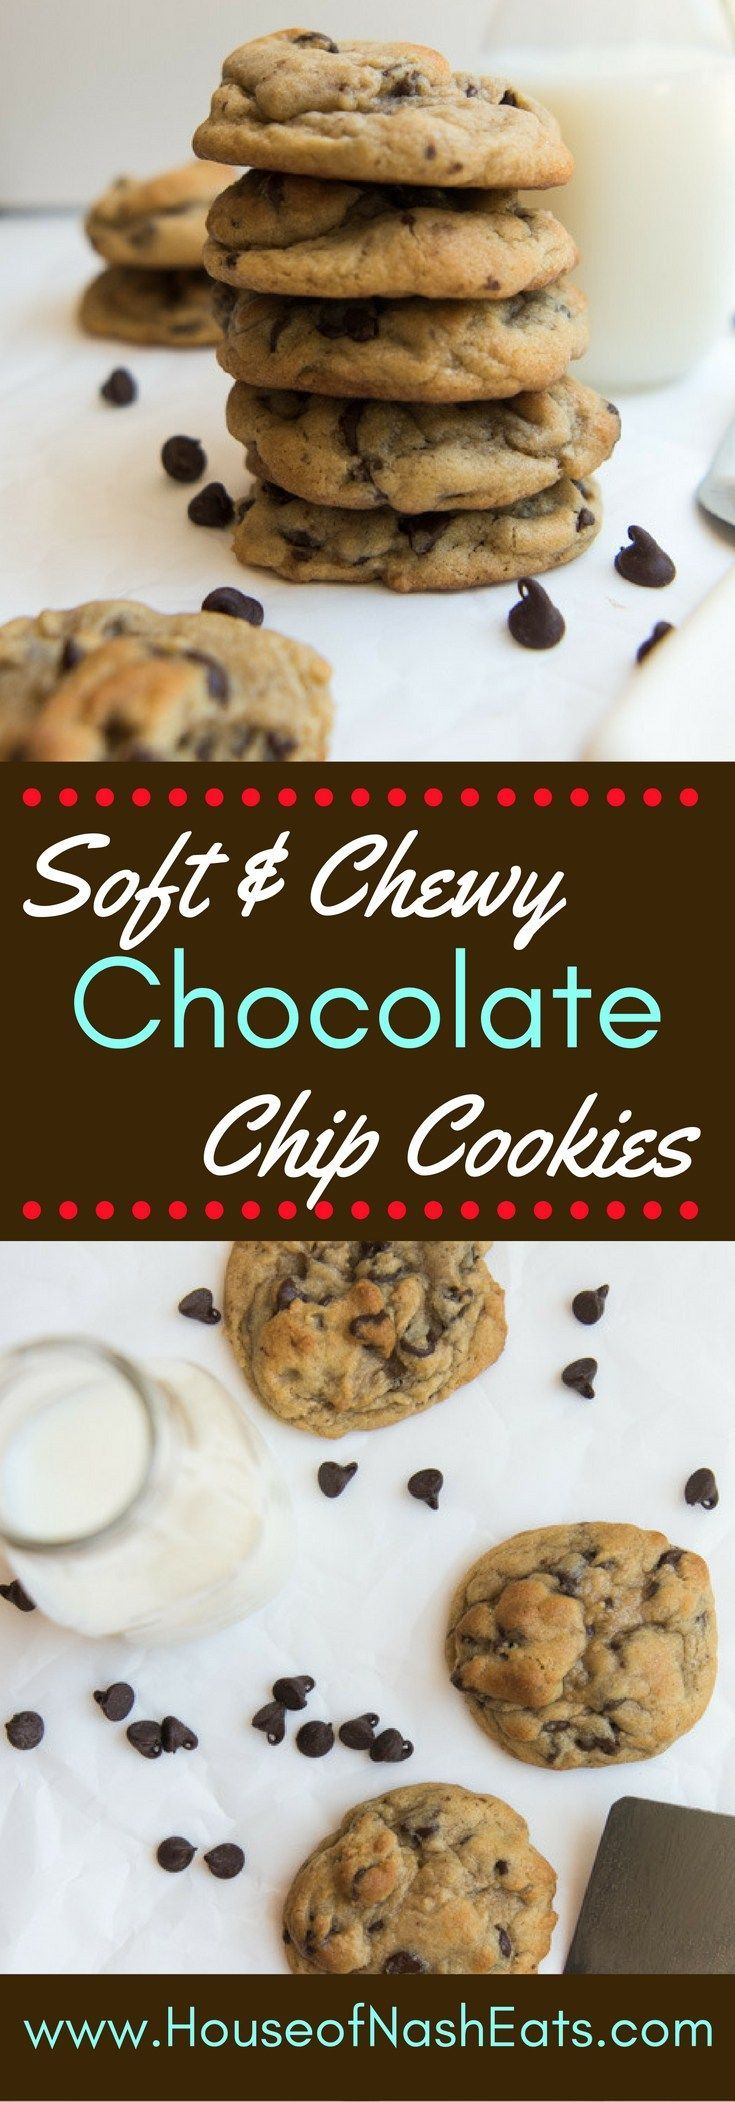 These soft & chewy chocolate chip cookies are everything you could ever want…